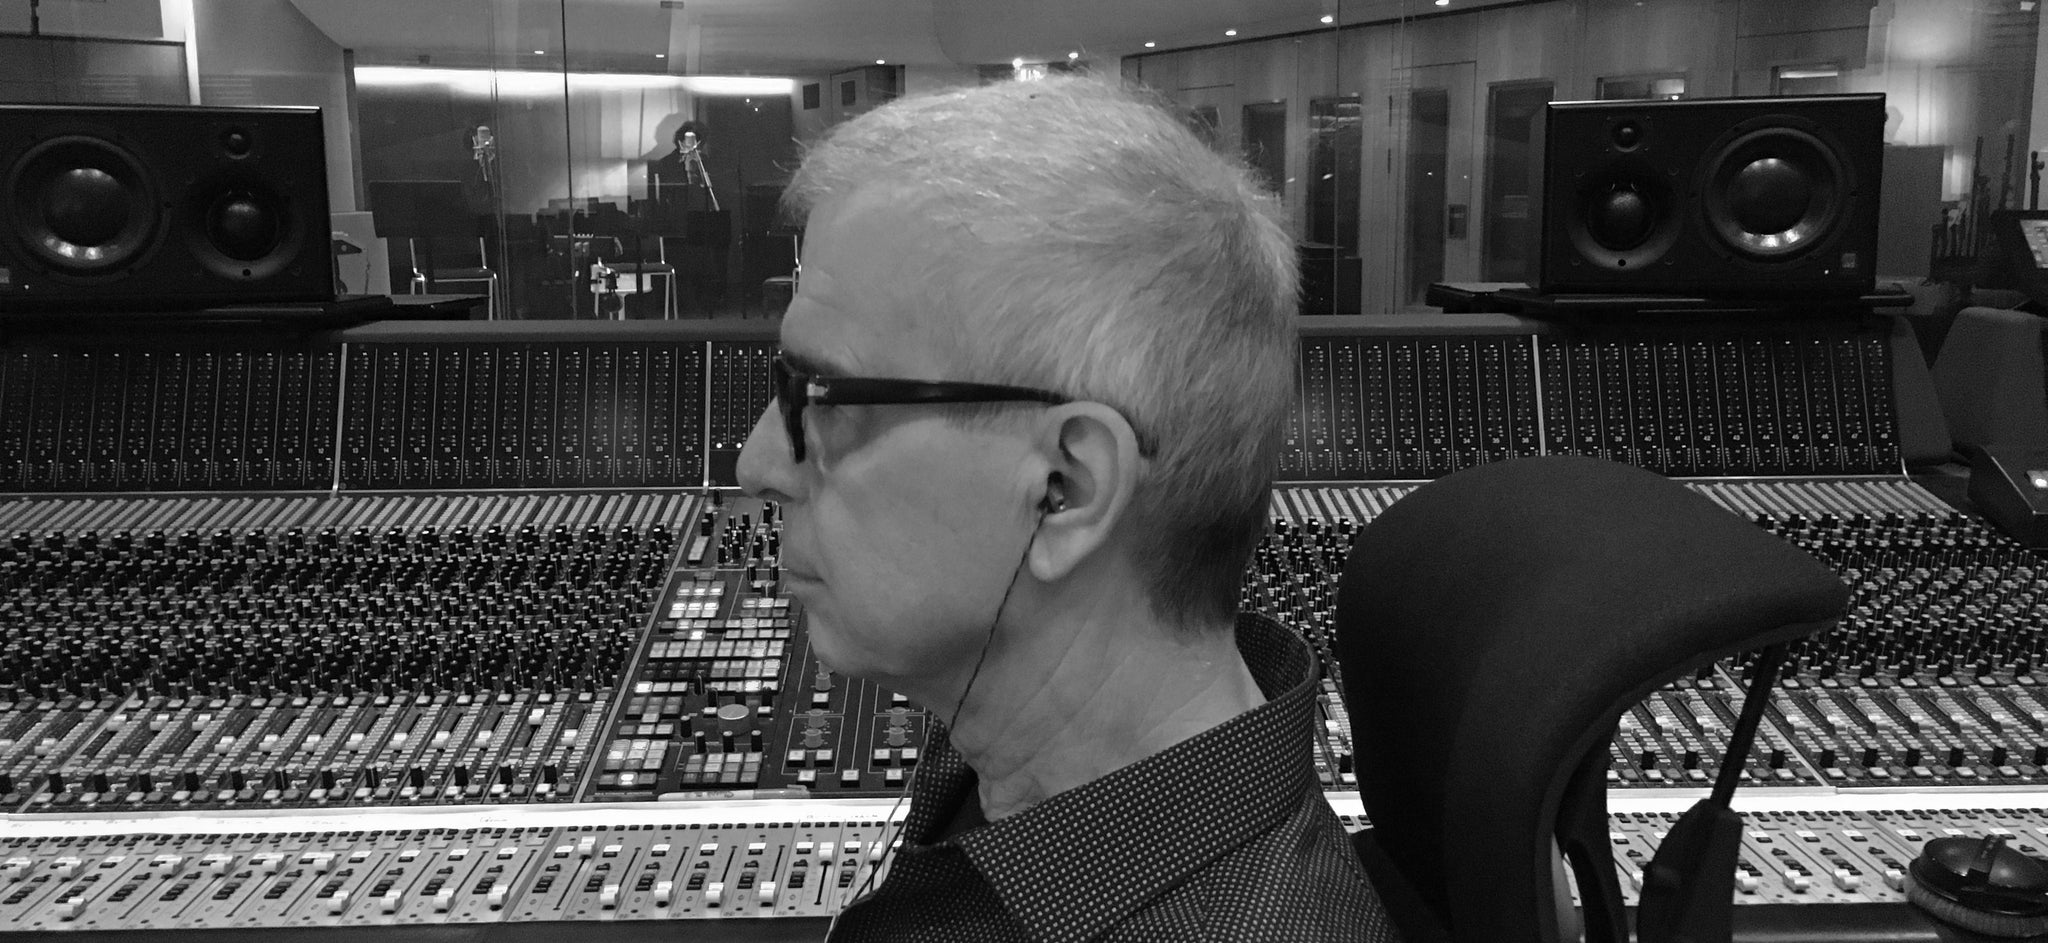 David Bowie's producer thinks these are the best earphones ever